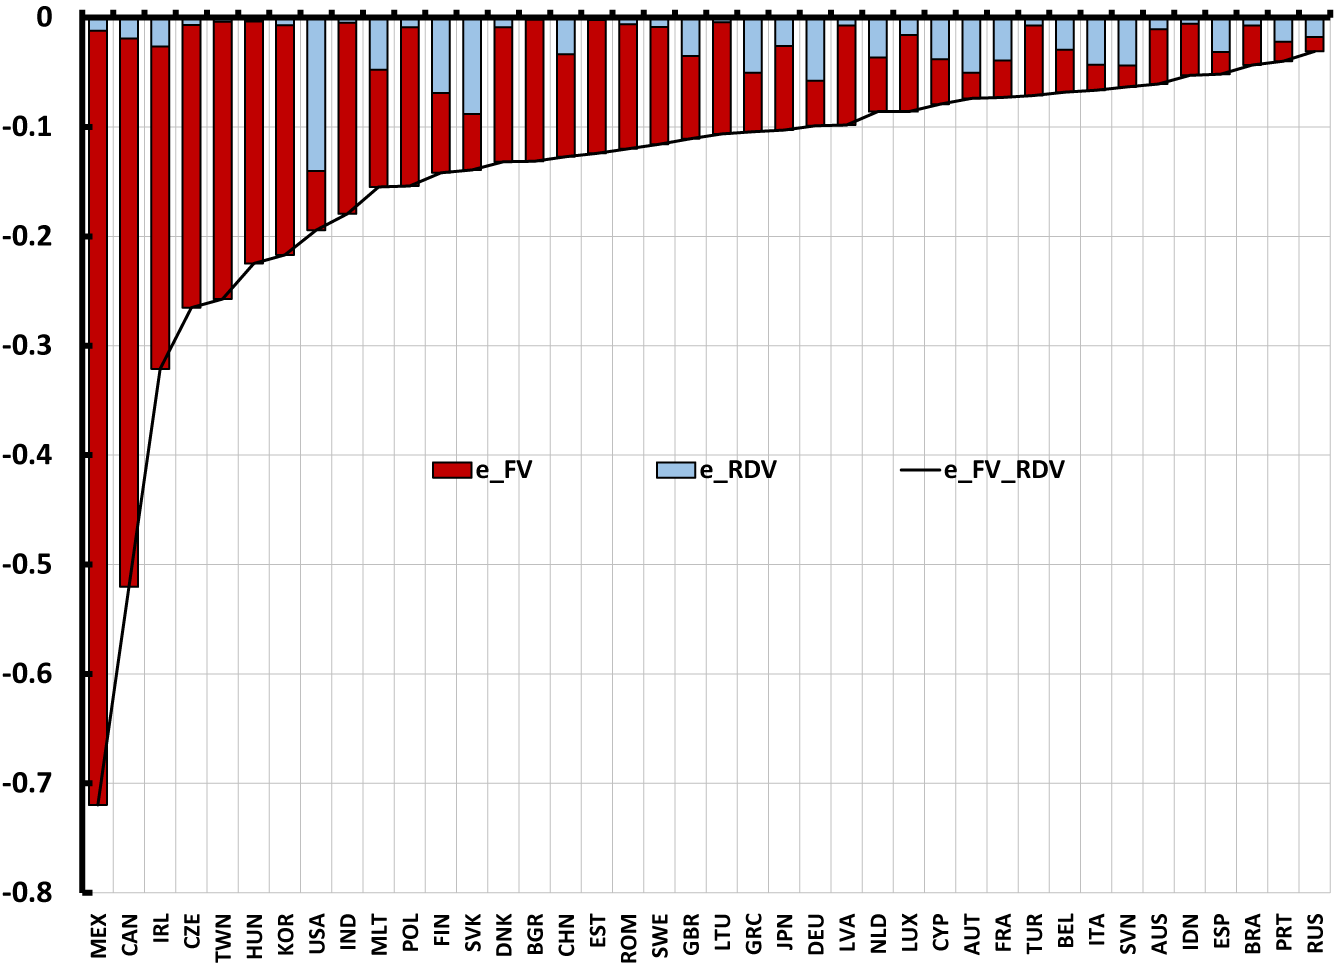 Figure 2. Average effect of FV and RDV on exchange rate elasticity across countries. See accessible link for data description.